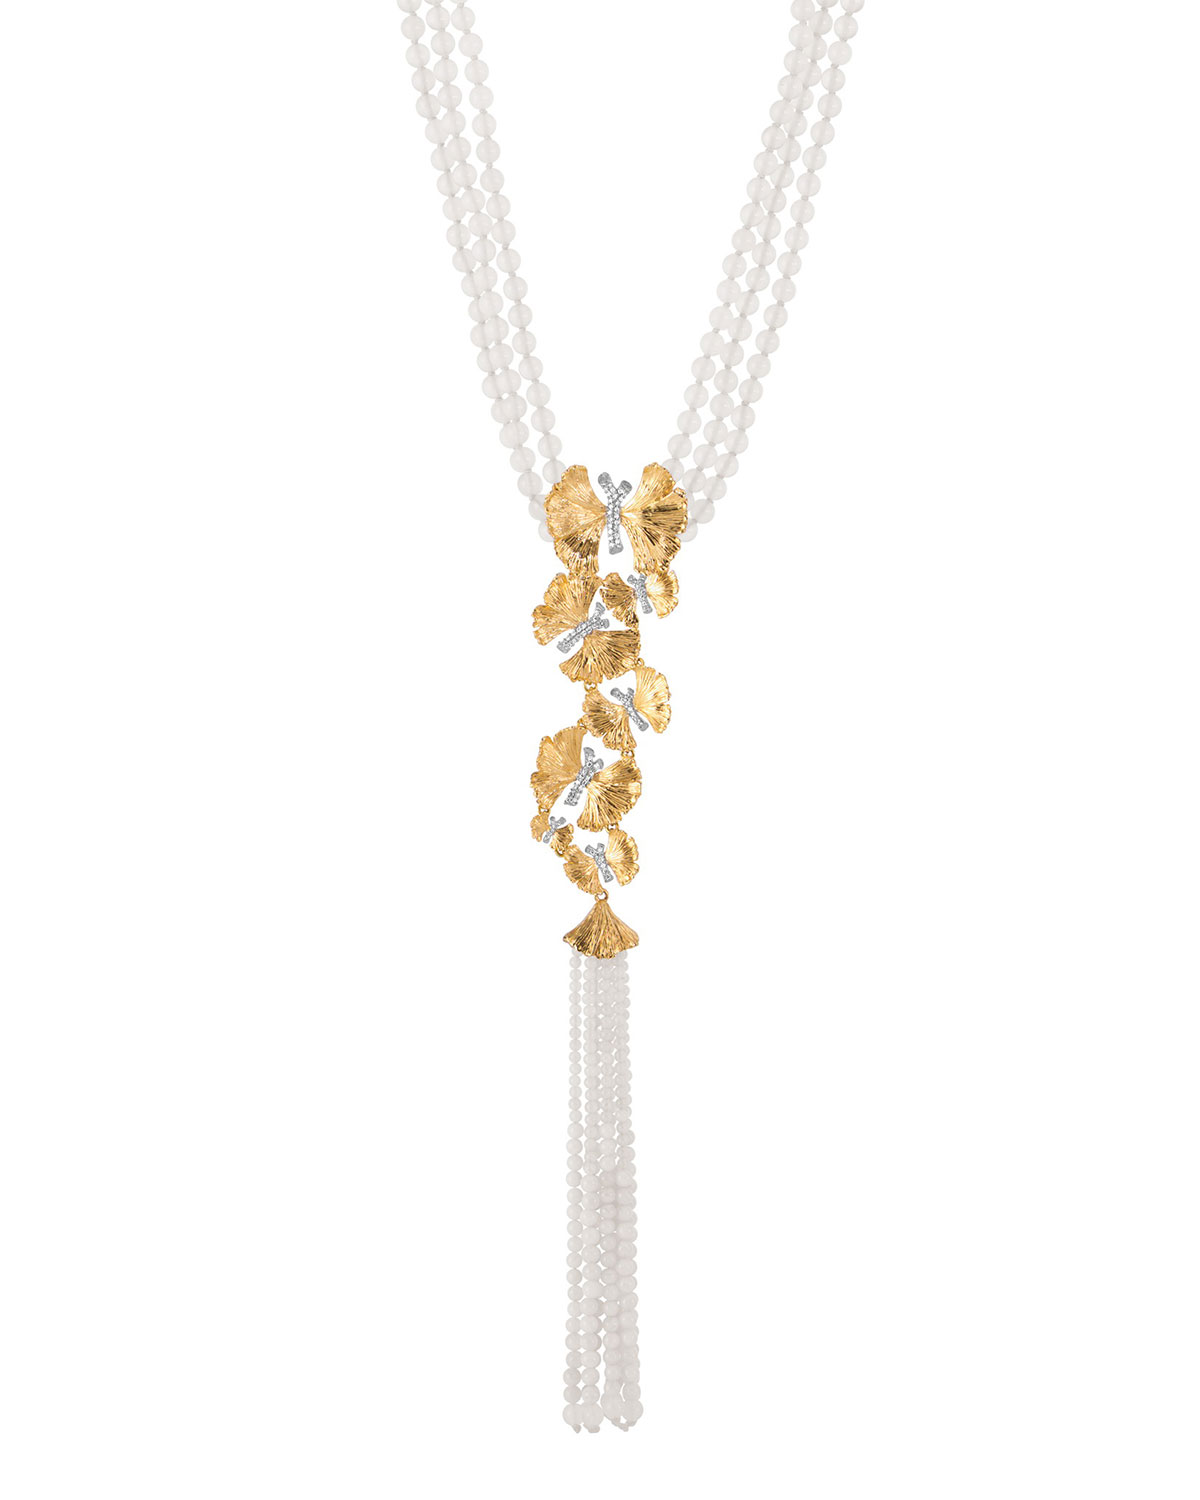 MICHAEL ARAM BUTTERFLY GINKGO SILVER & GOLD LARIAT NECKLACE W/ MOONSTONE